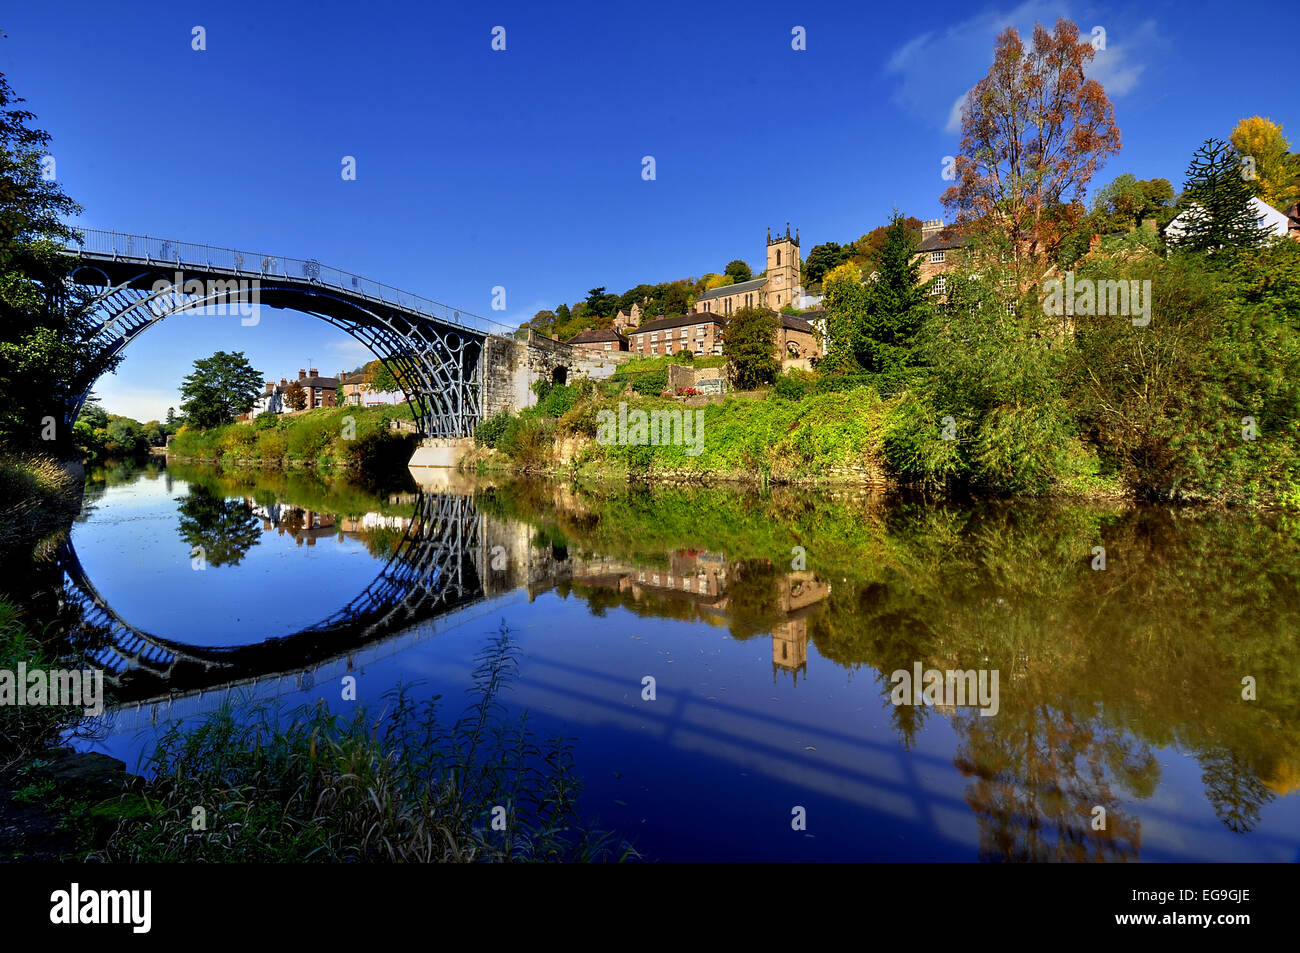 UK, England, Shropshire, Telford, Symmetrical view of Ironbridge and hill reflecting in water - Stock Image